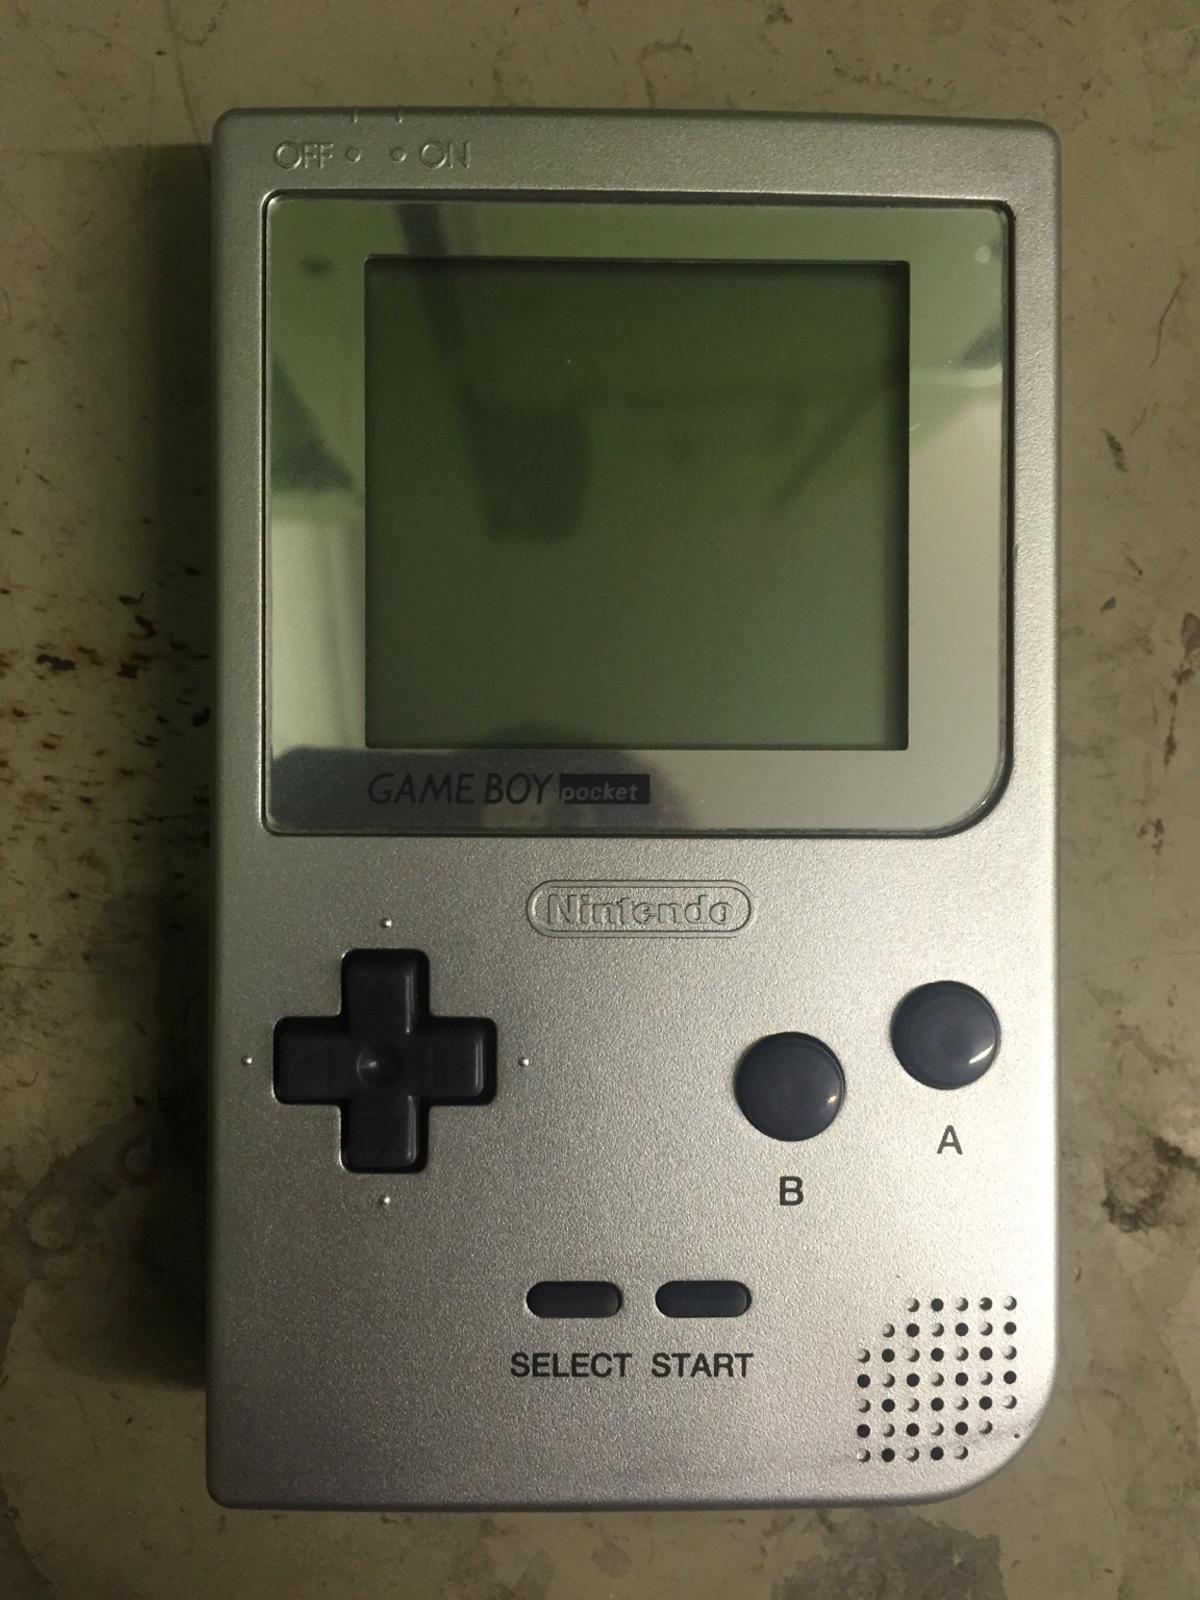 Gameboy Pocket & Case PERFECT CONDITION! in S62 Rotherham for £30 00